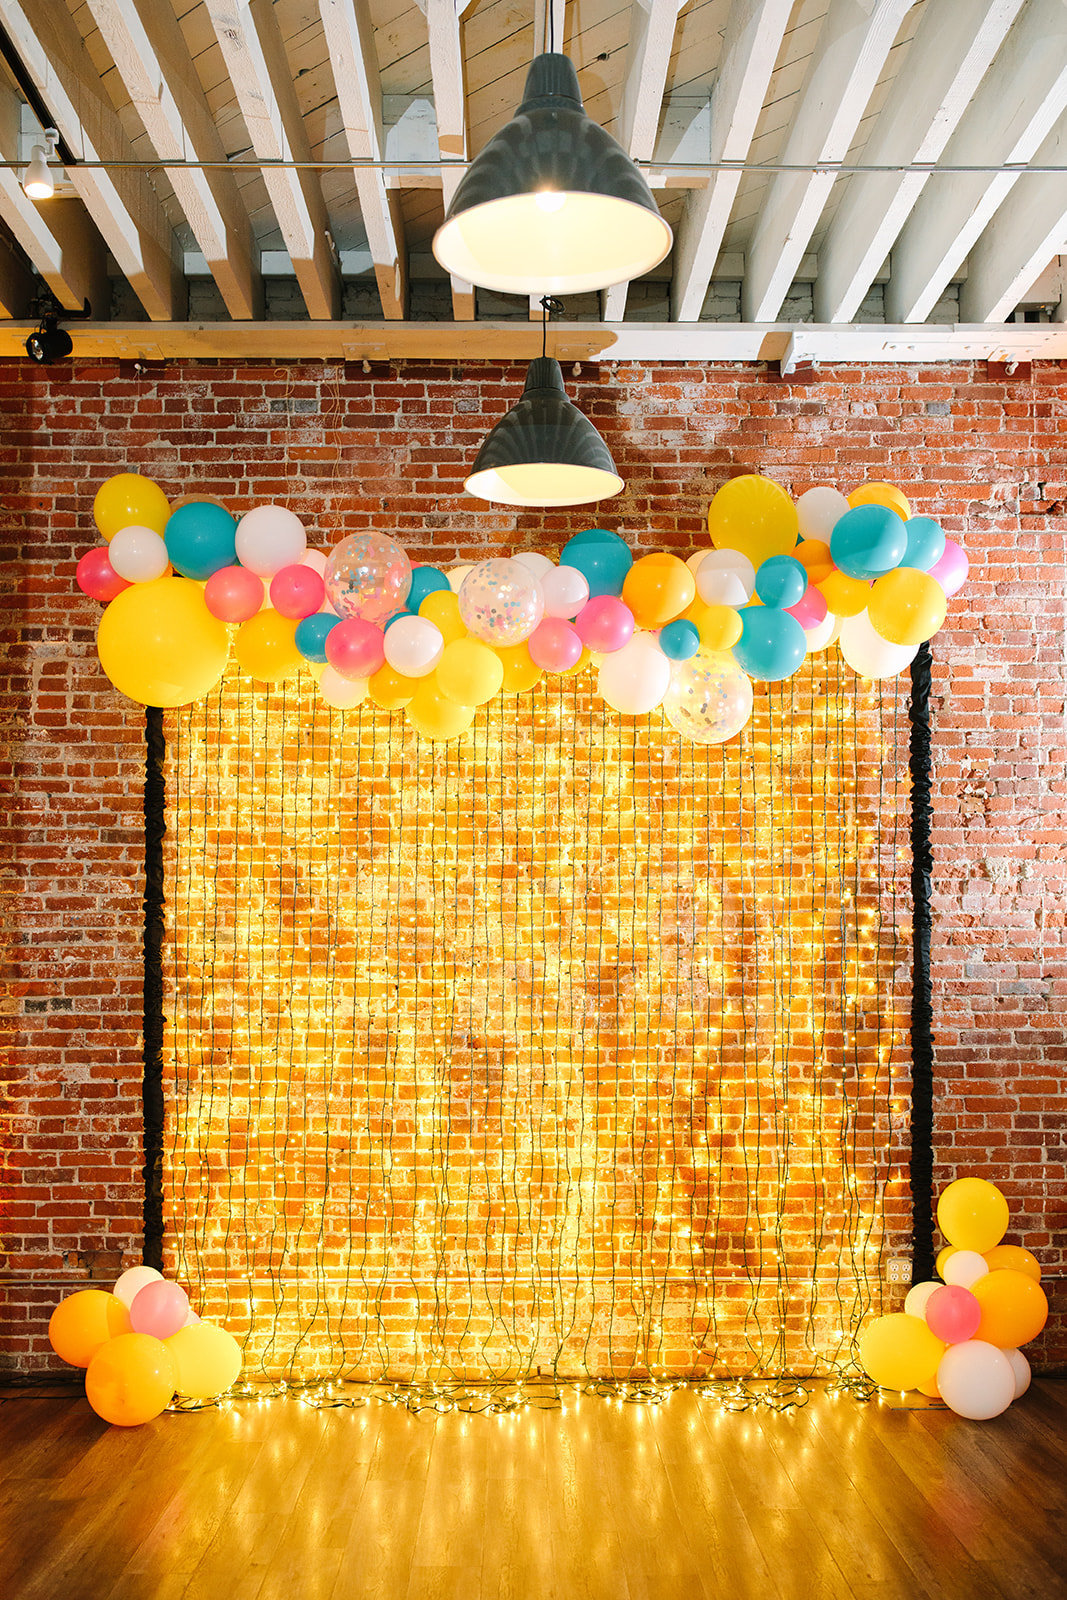 Wedding reception photobooth backrop with gold lights and balloons at The Uniqe Space LA